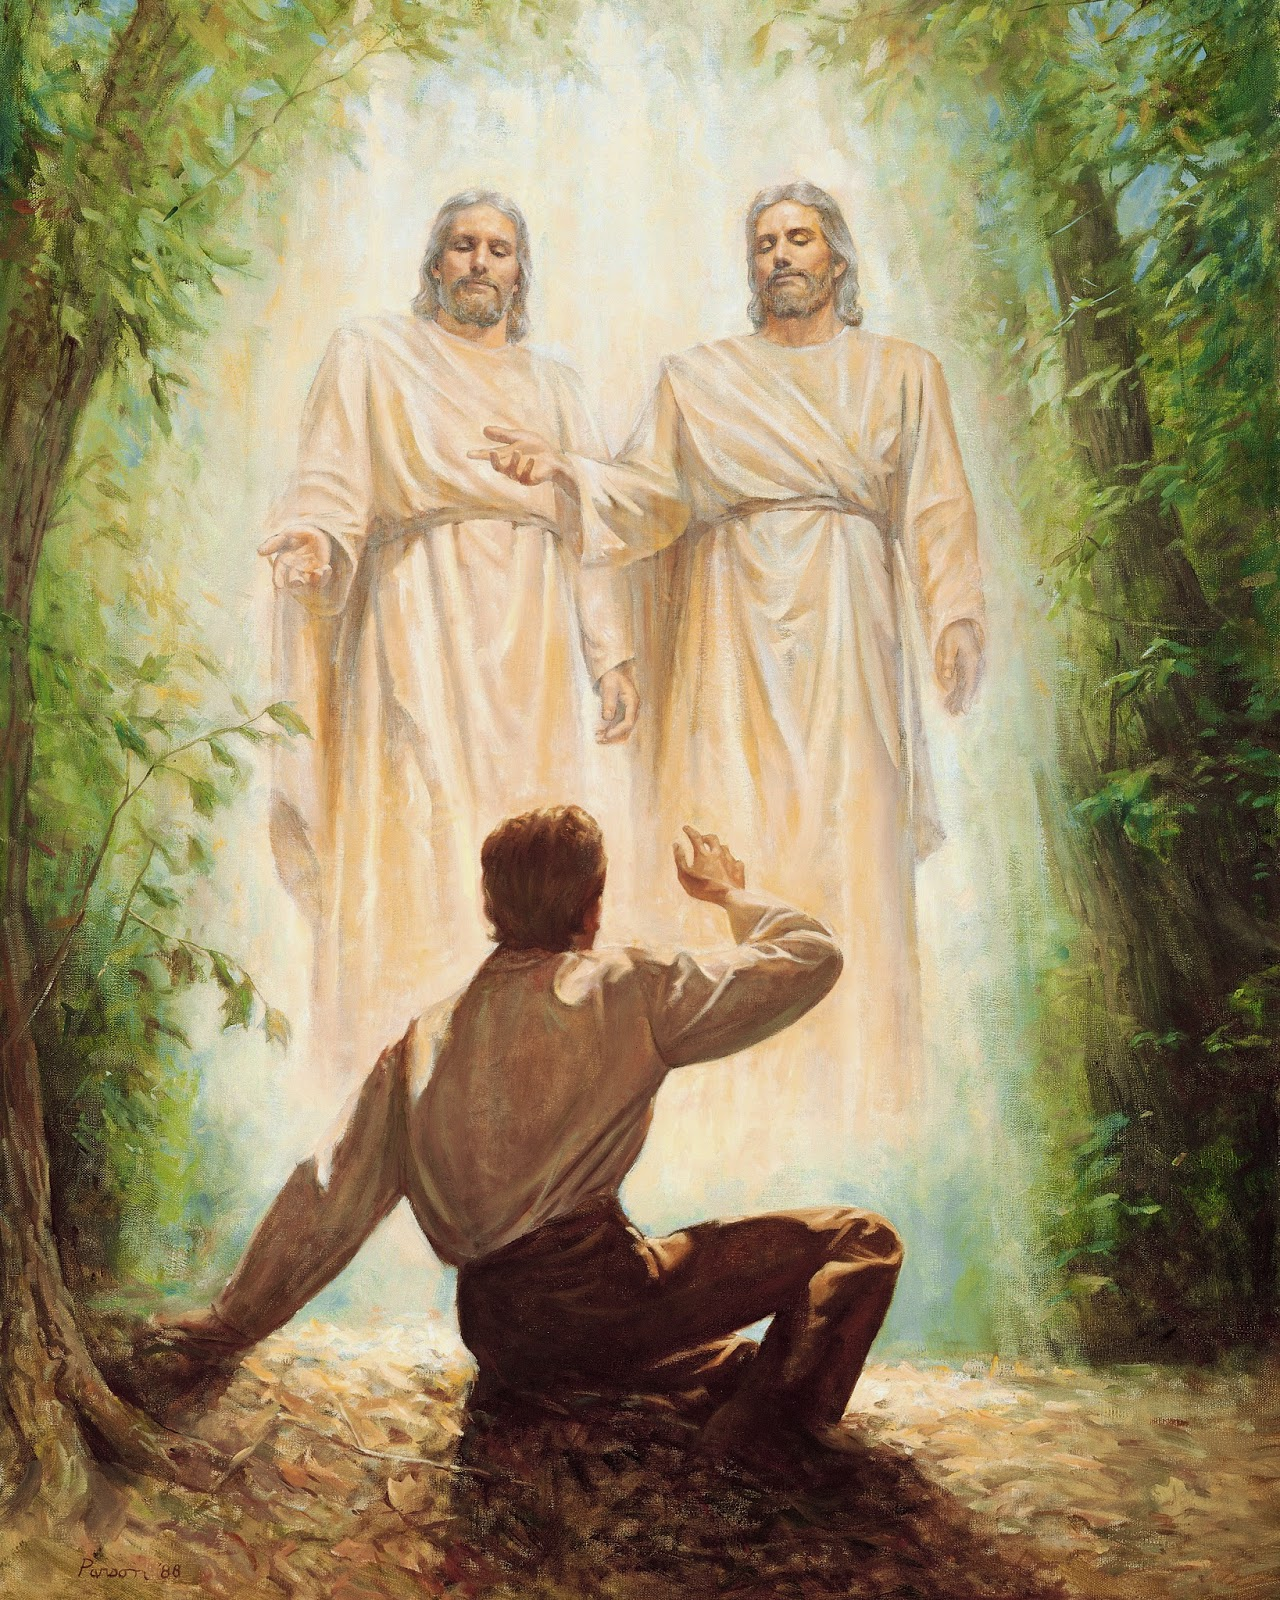 Heavenly Father and Jesus Christ, appearing to Joseph Smith